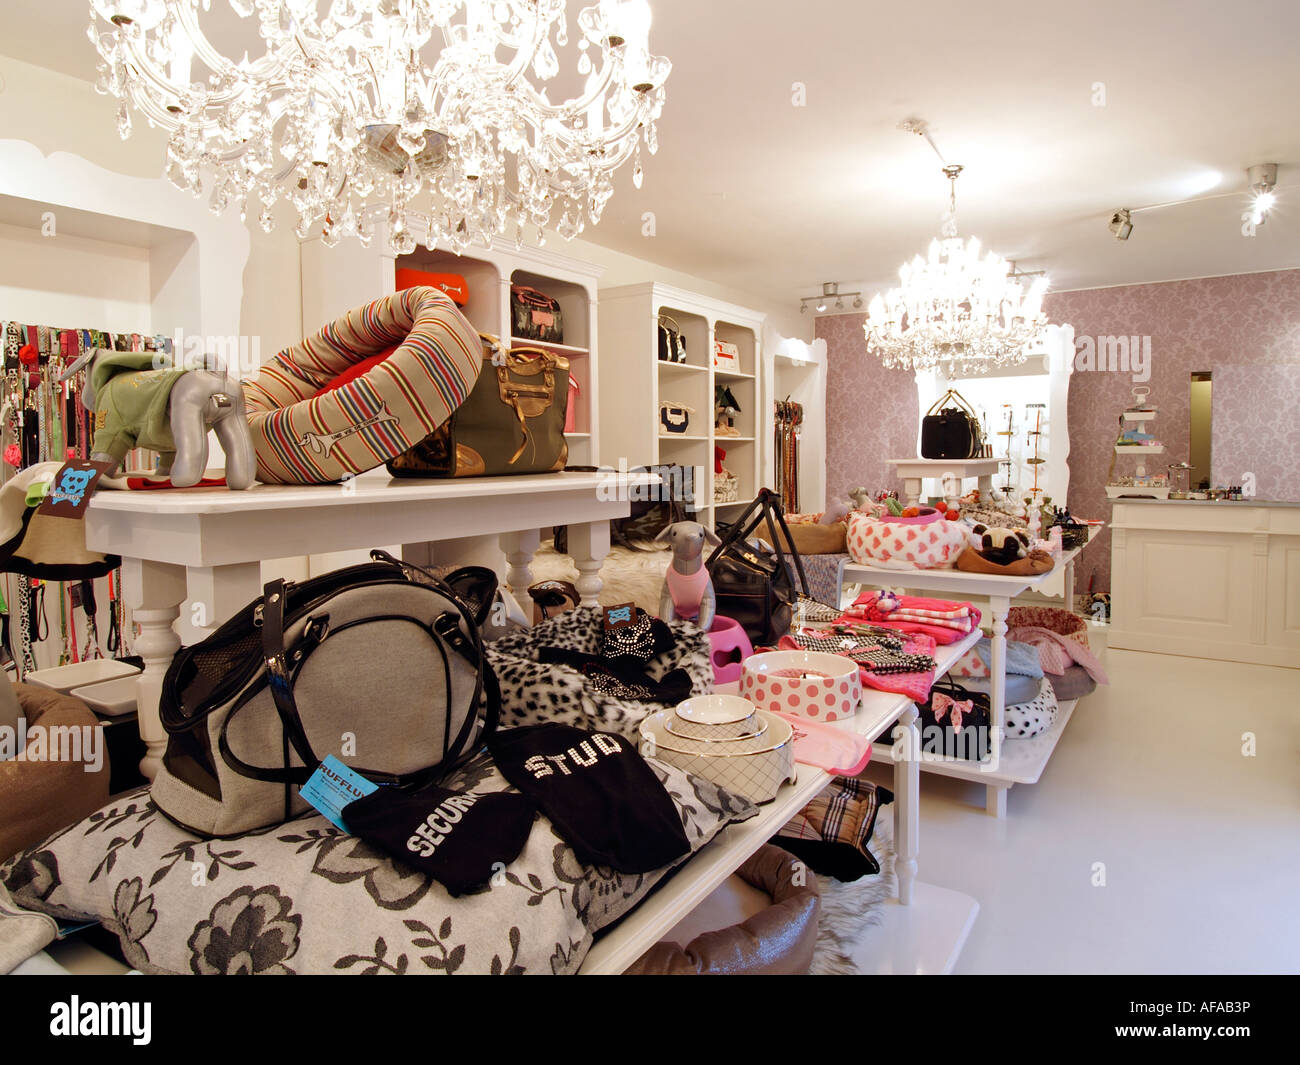 Luxury pet accessory store interior showing many products like luxurious rugs pillows food bowls and clothes for - Stock Image